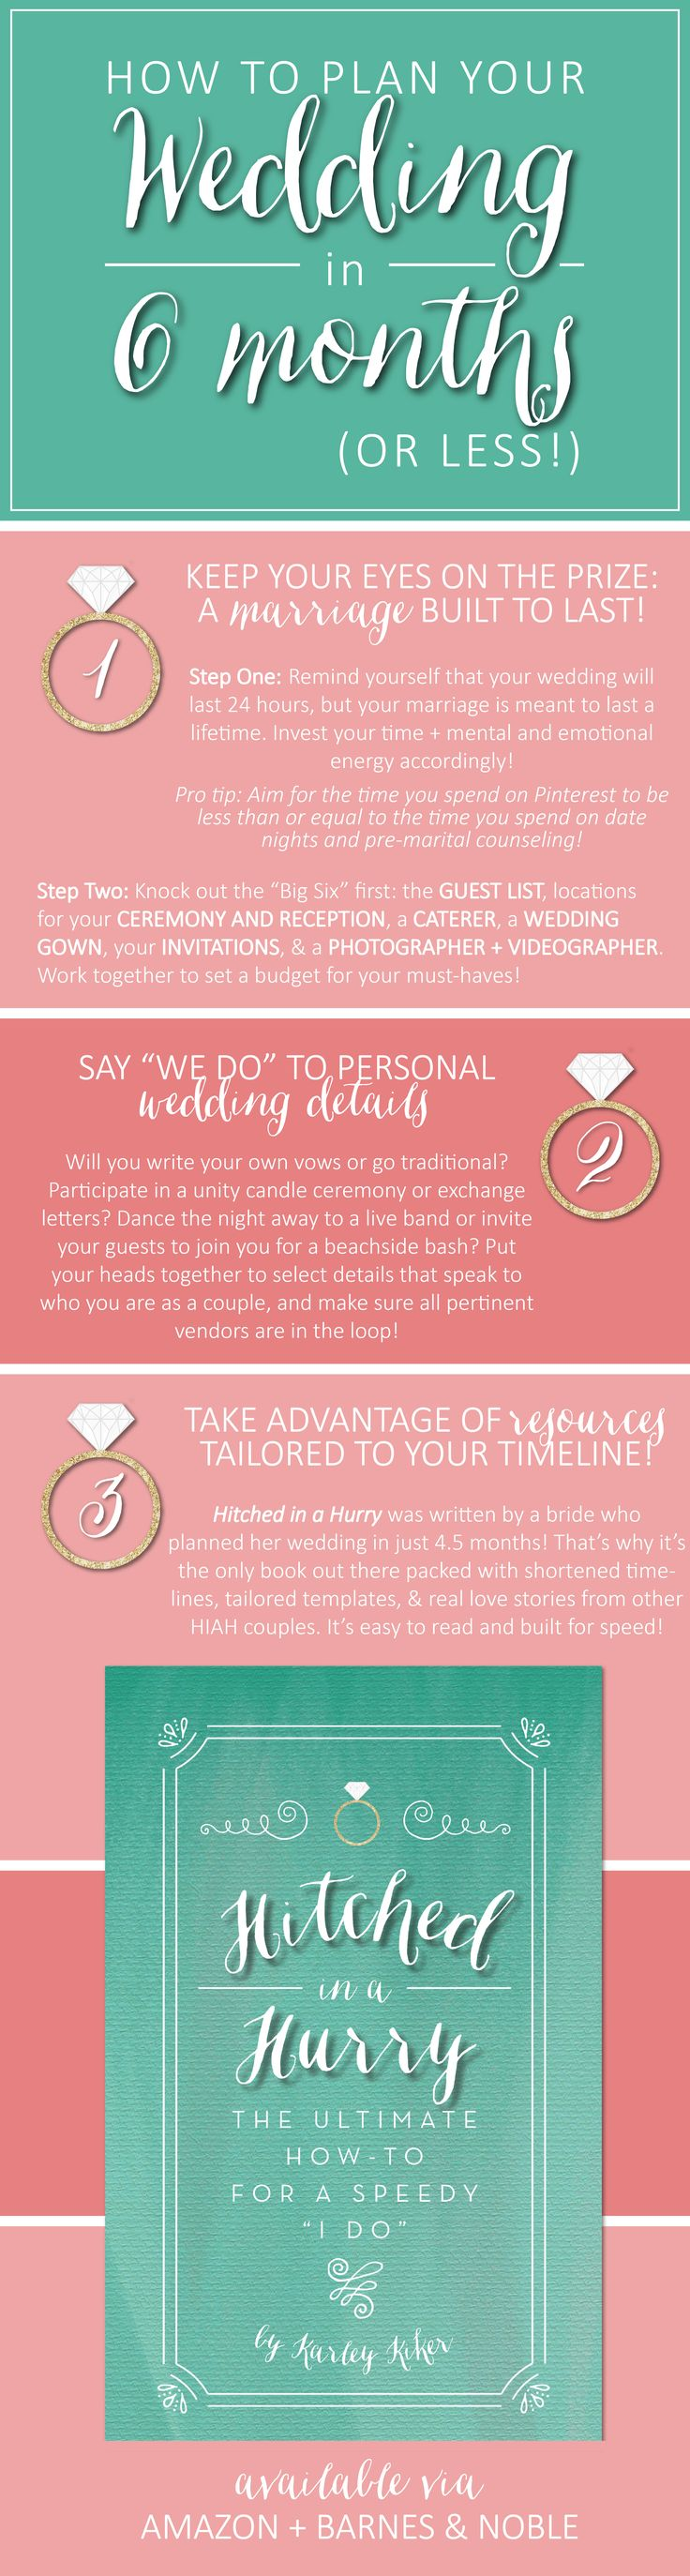 17 best ideas about september weddings on pinterest september wedding colors september. Black Bedroom Furniture Sets. Home Design Ideas